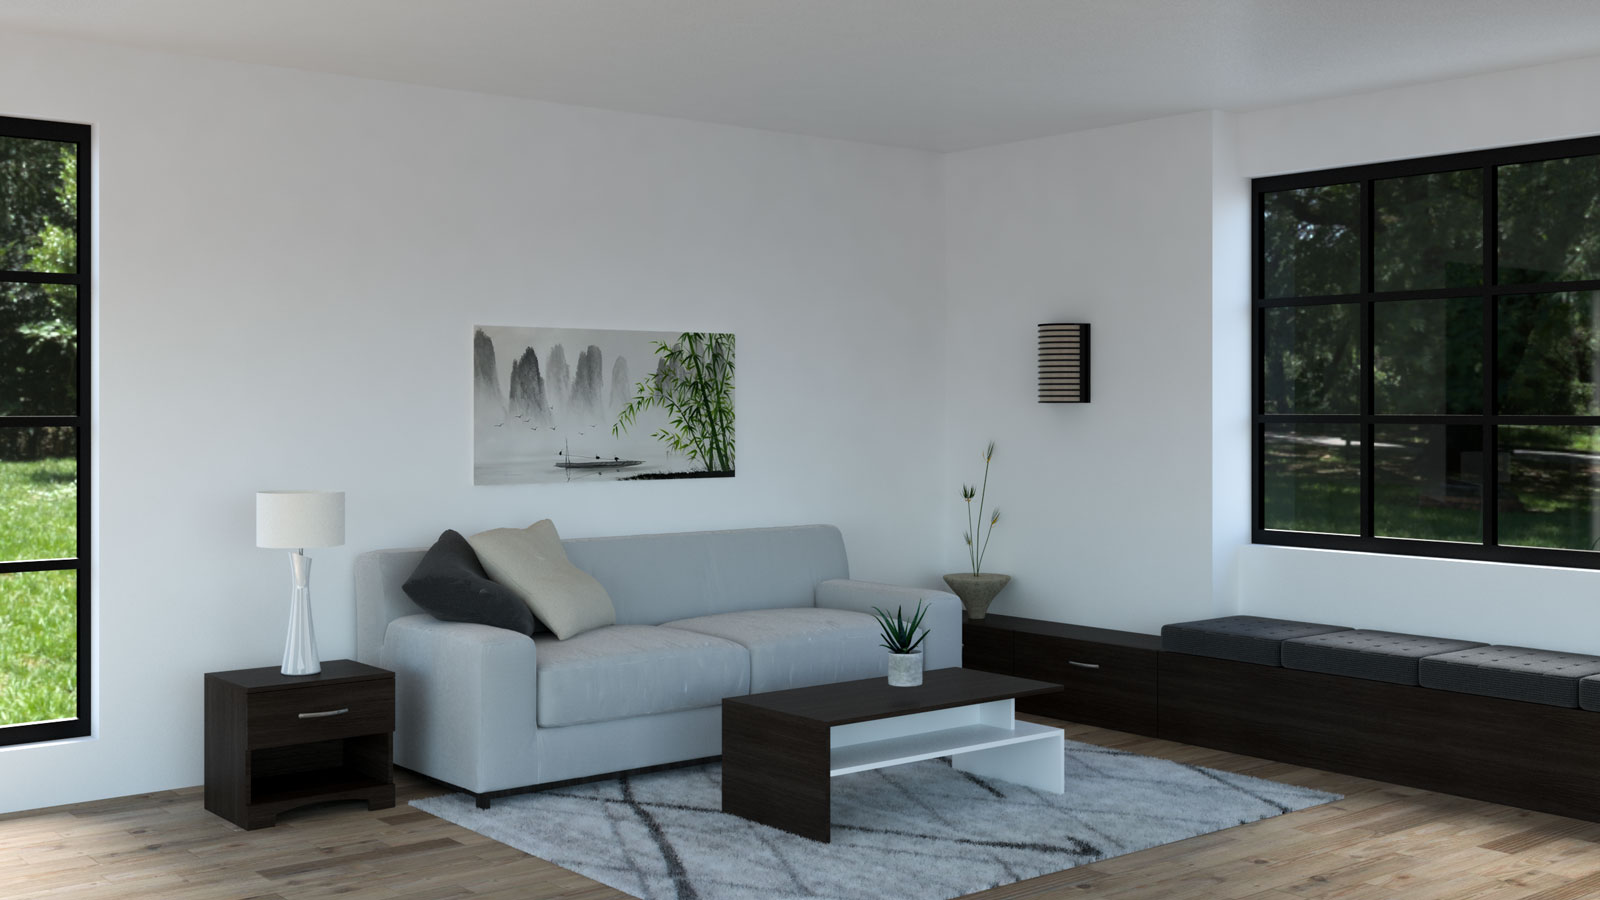 Light gray couch with espresso furniture